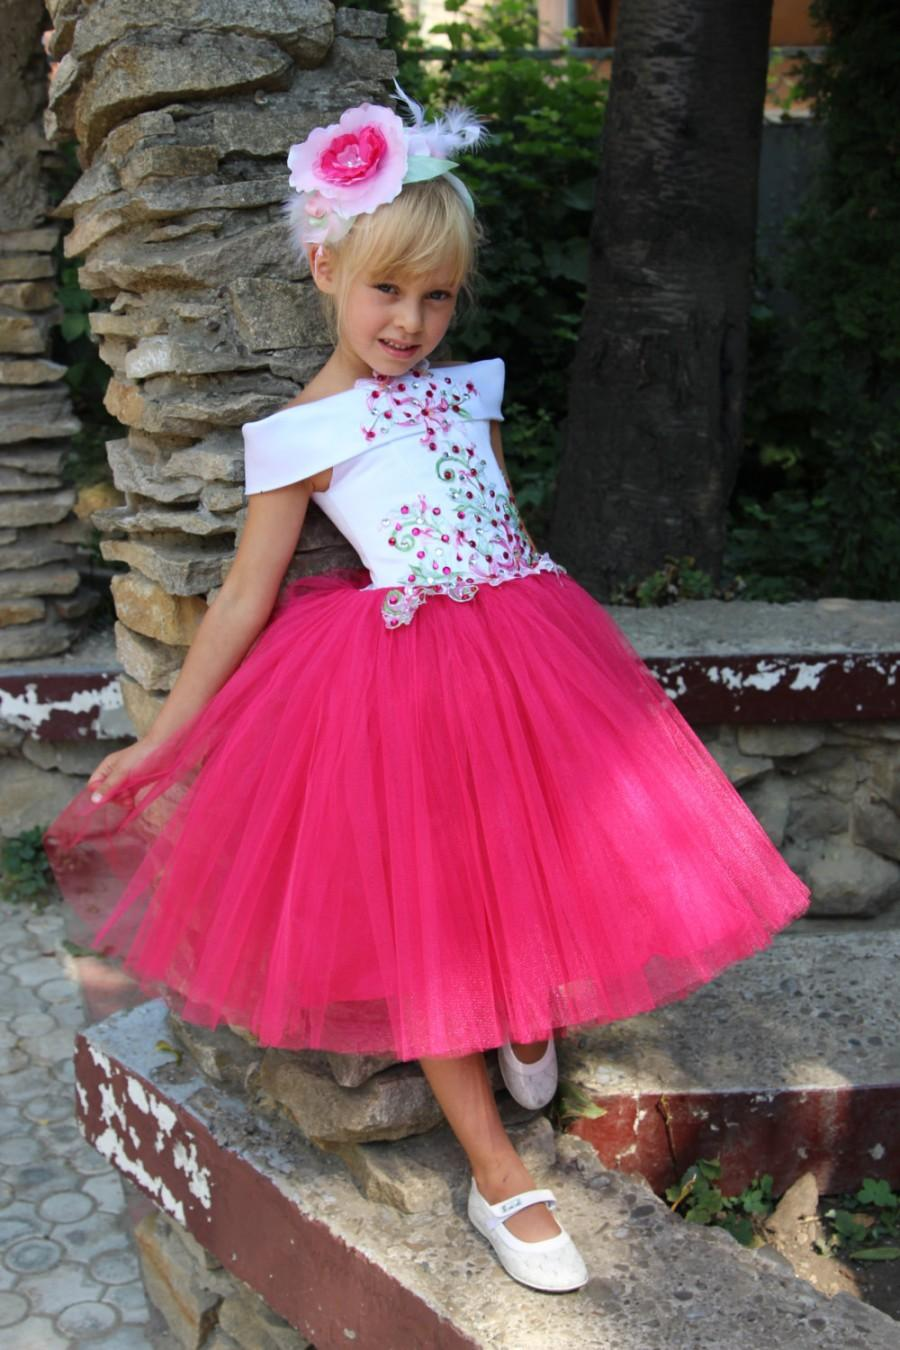 Wedding - Pink Flower Girl Dress - Birthday Wedding Party Holiday Peasant Bridesmaid Tulle Deep Pink Dress